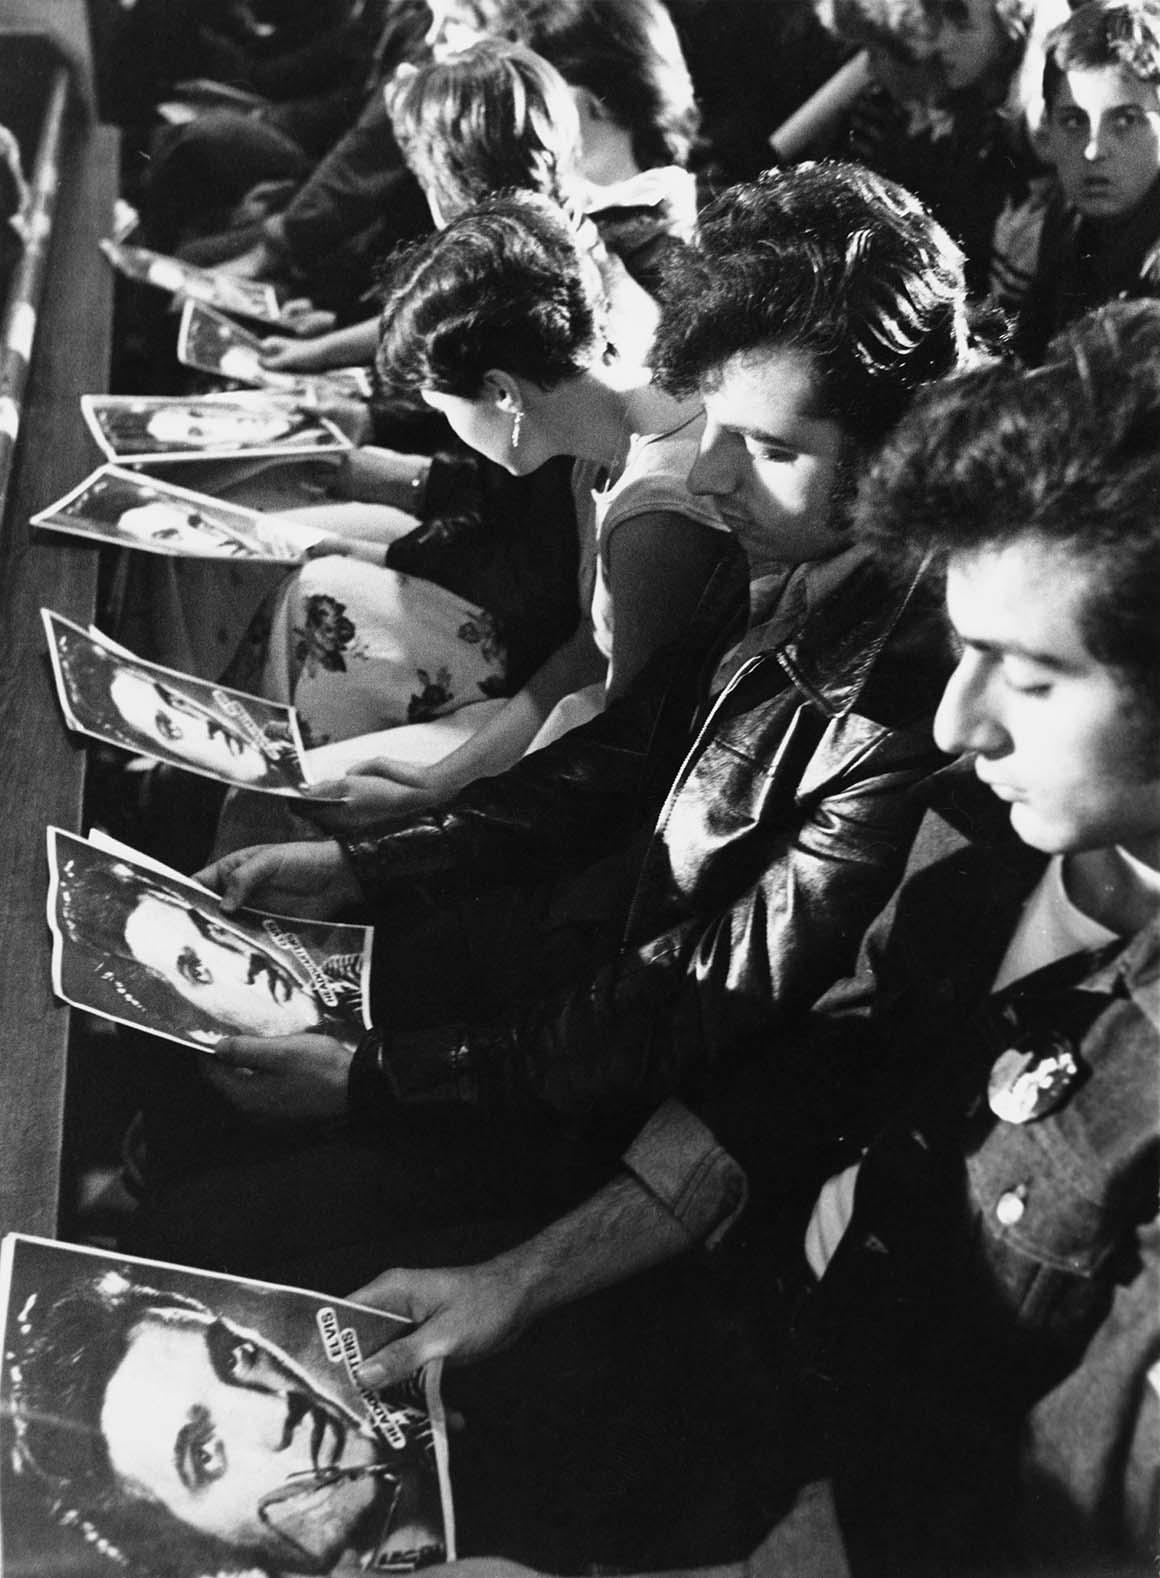 Fans with special prayer sheets at a memorial service for Elvis Presley held in London just after the singer's death on the 16th August 1977.